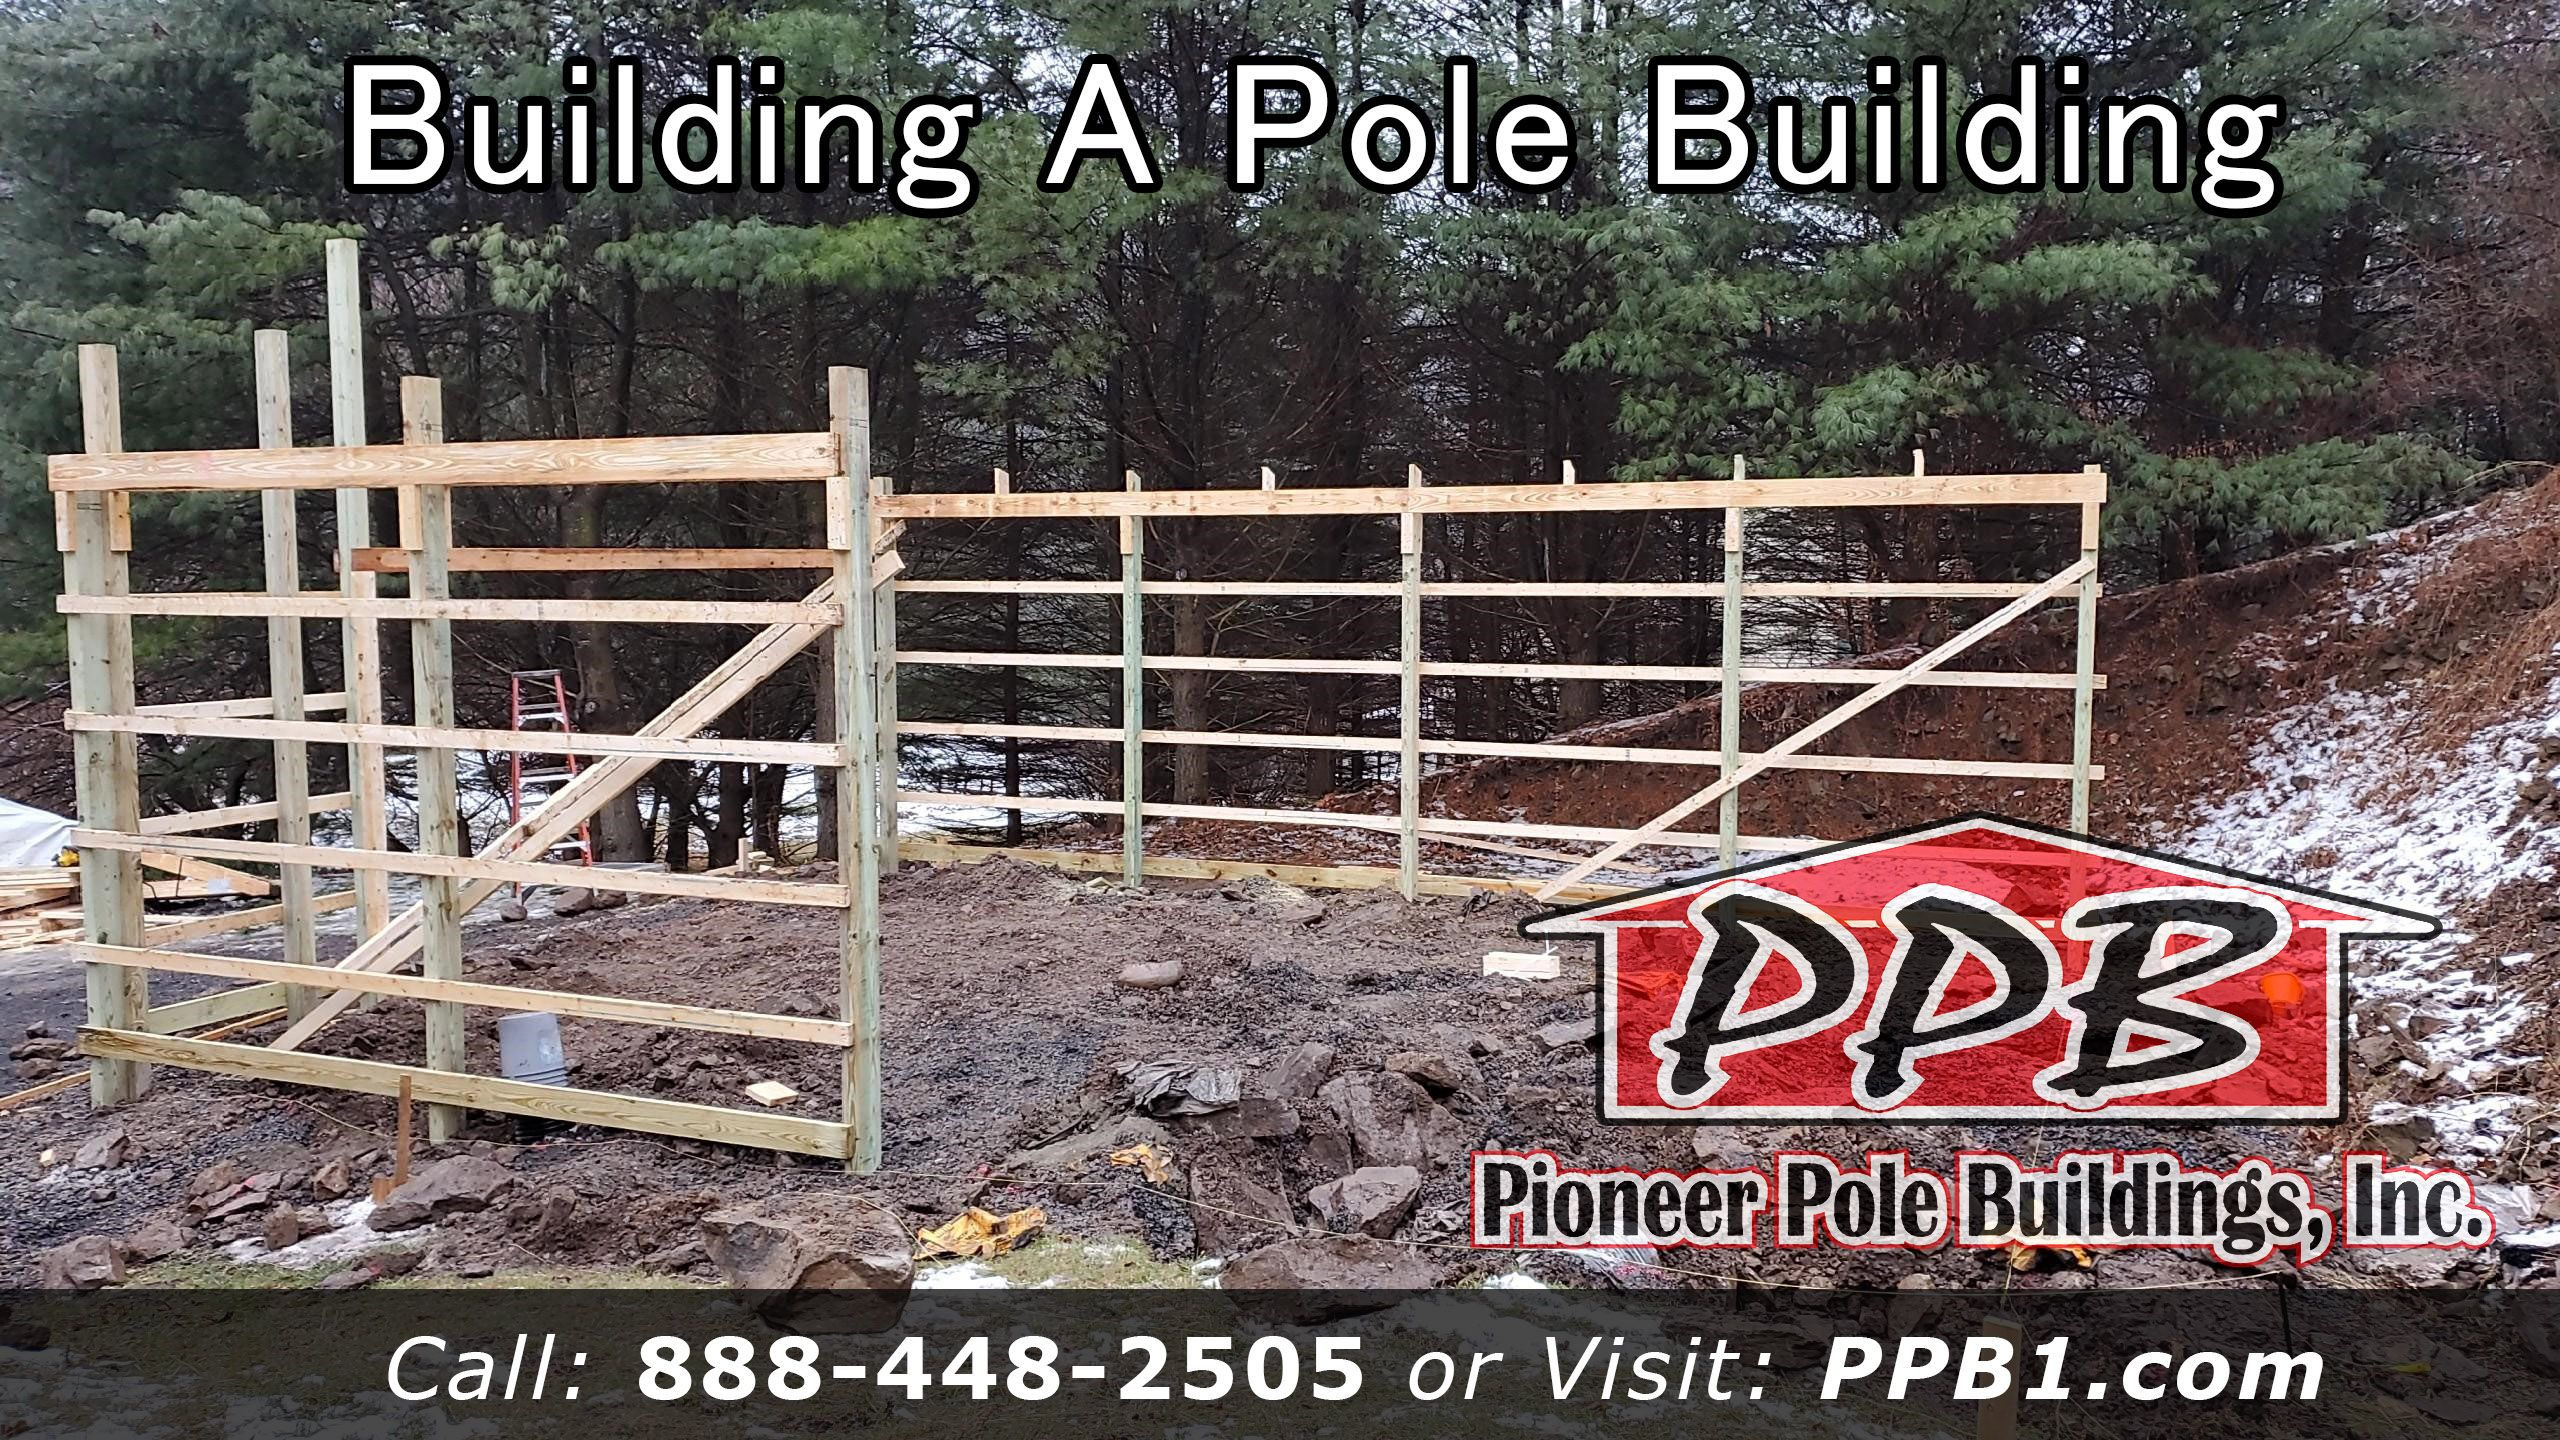 Building A Pole Building. Slowly building in the rocks ...